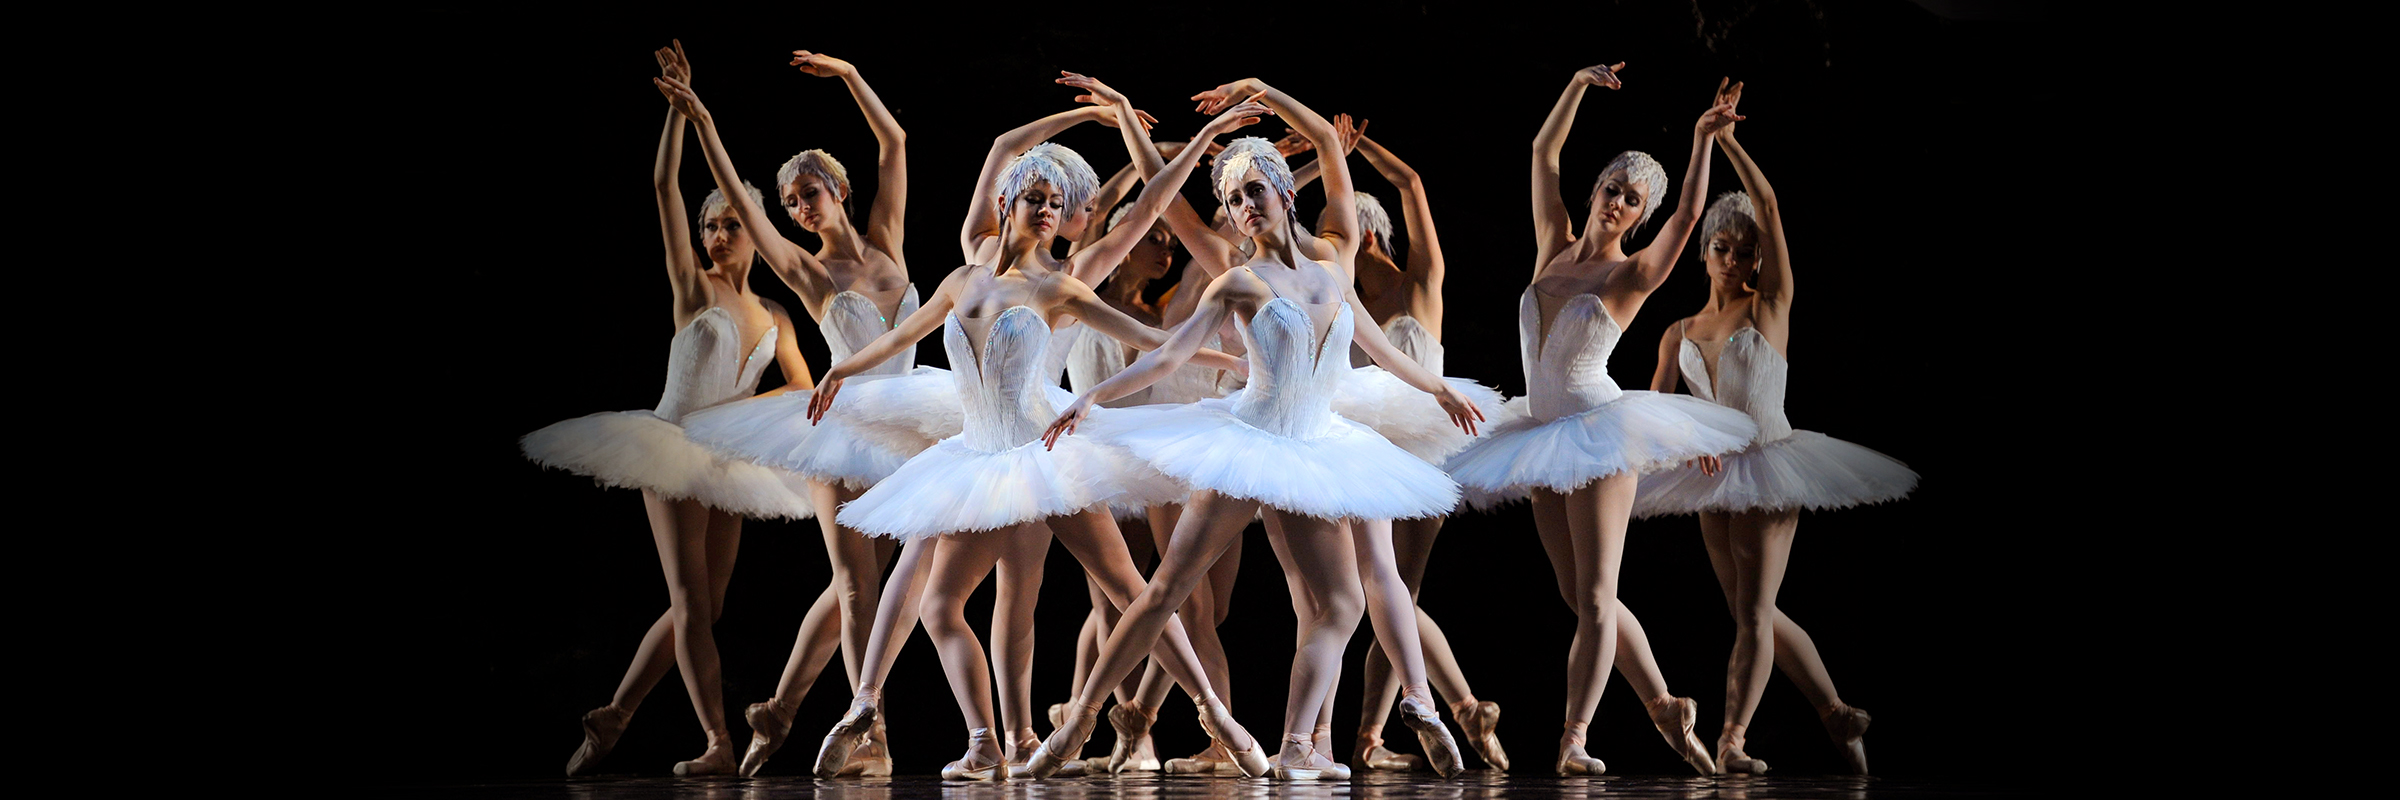 Standing in various poses, arms raised or horizontal, nine swans surround a distraught Odette following Siegfried's broken vow